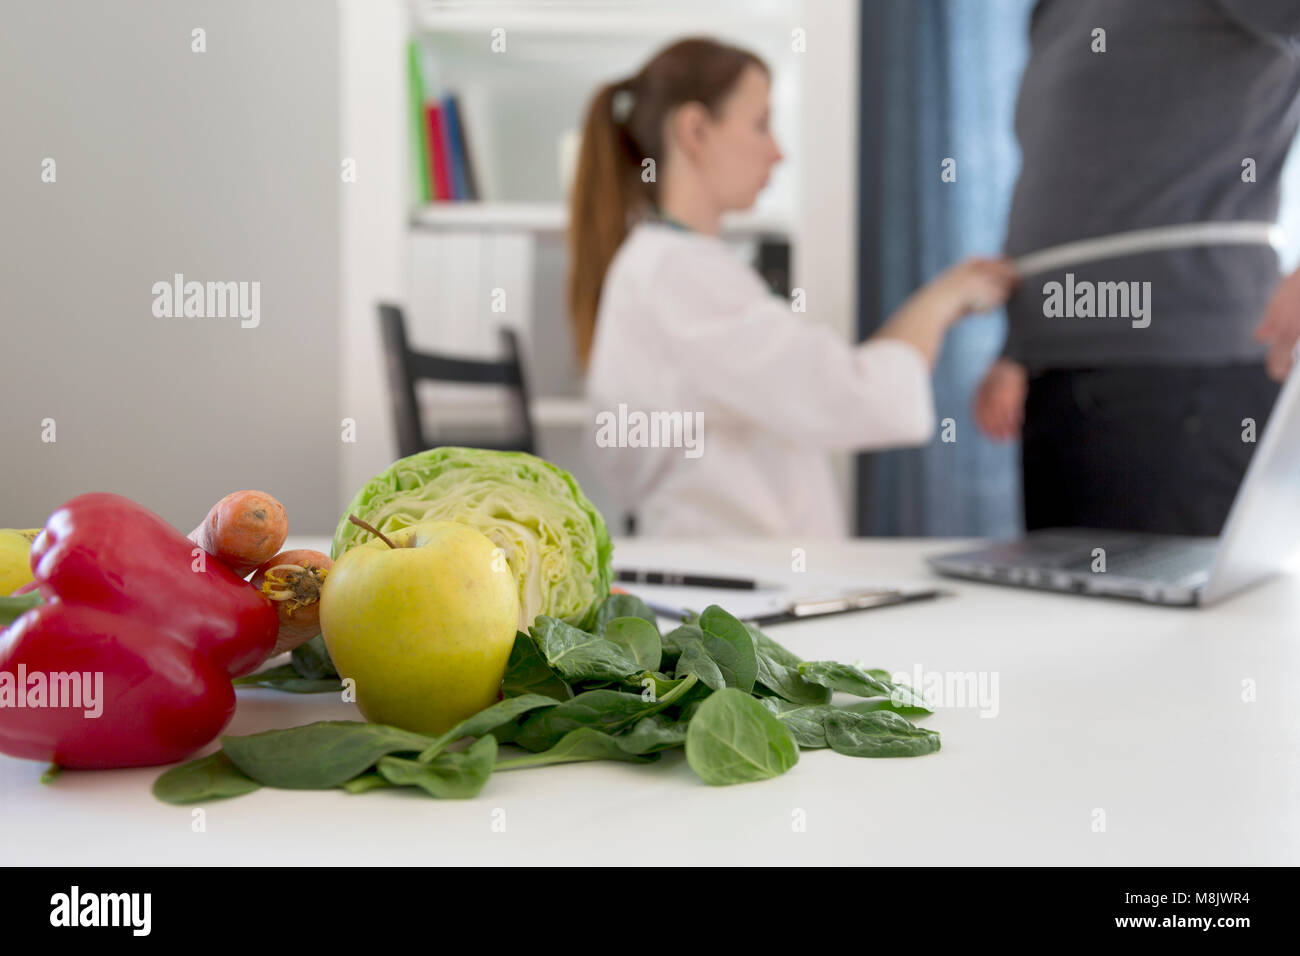 Vegetable diet nutrition and medication concept. Nutritionist measures patient's waist and offers healthy vegetables - Stock Image